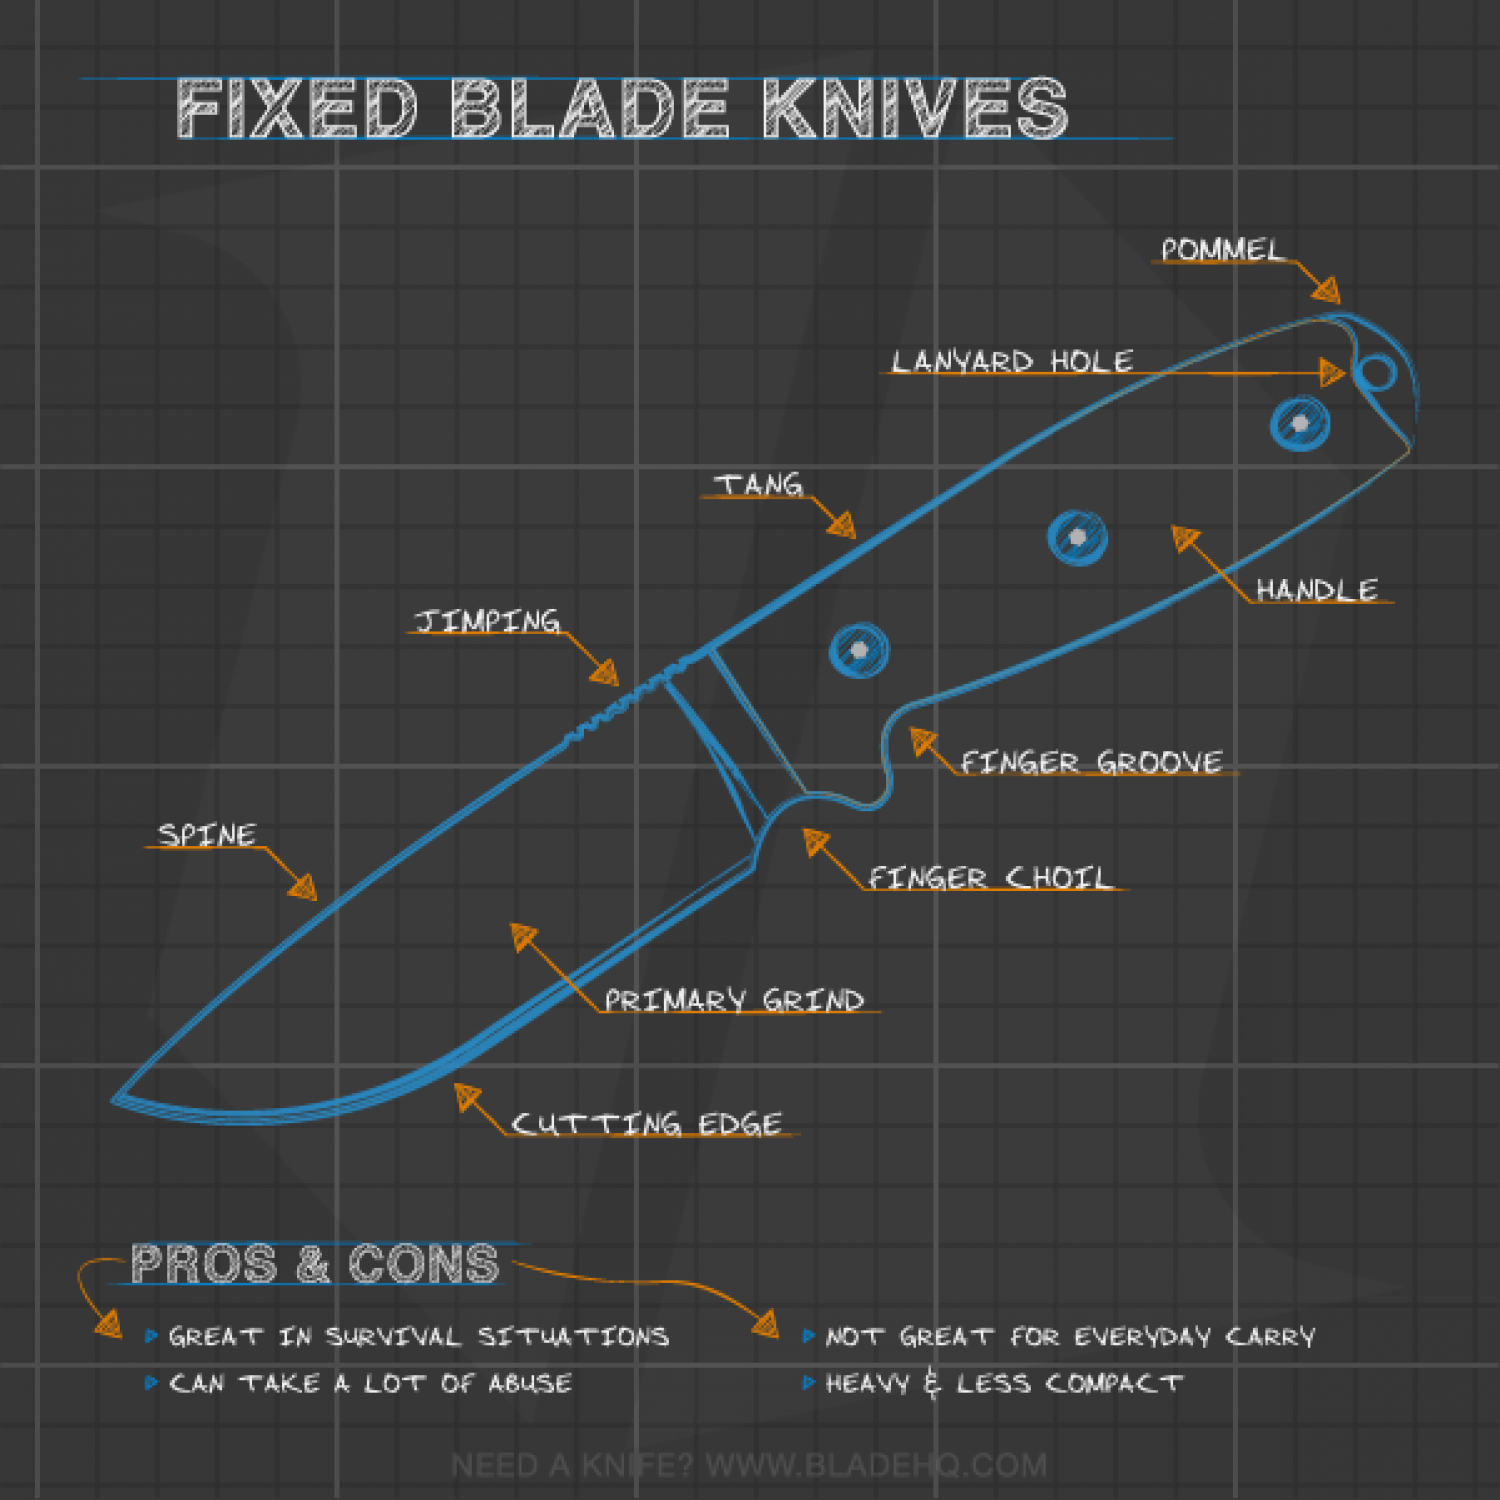 Anatomy of a Fixed Blade Knife Infographic